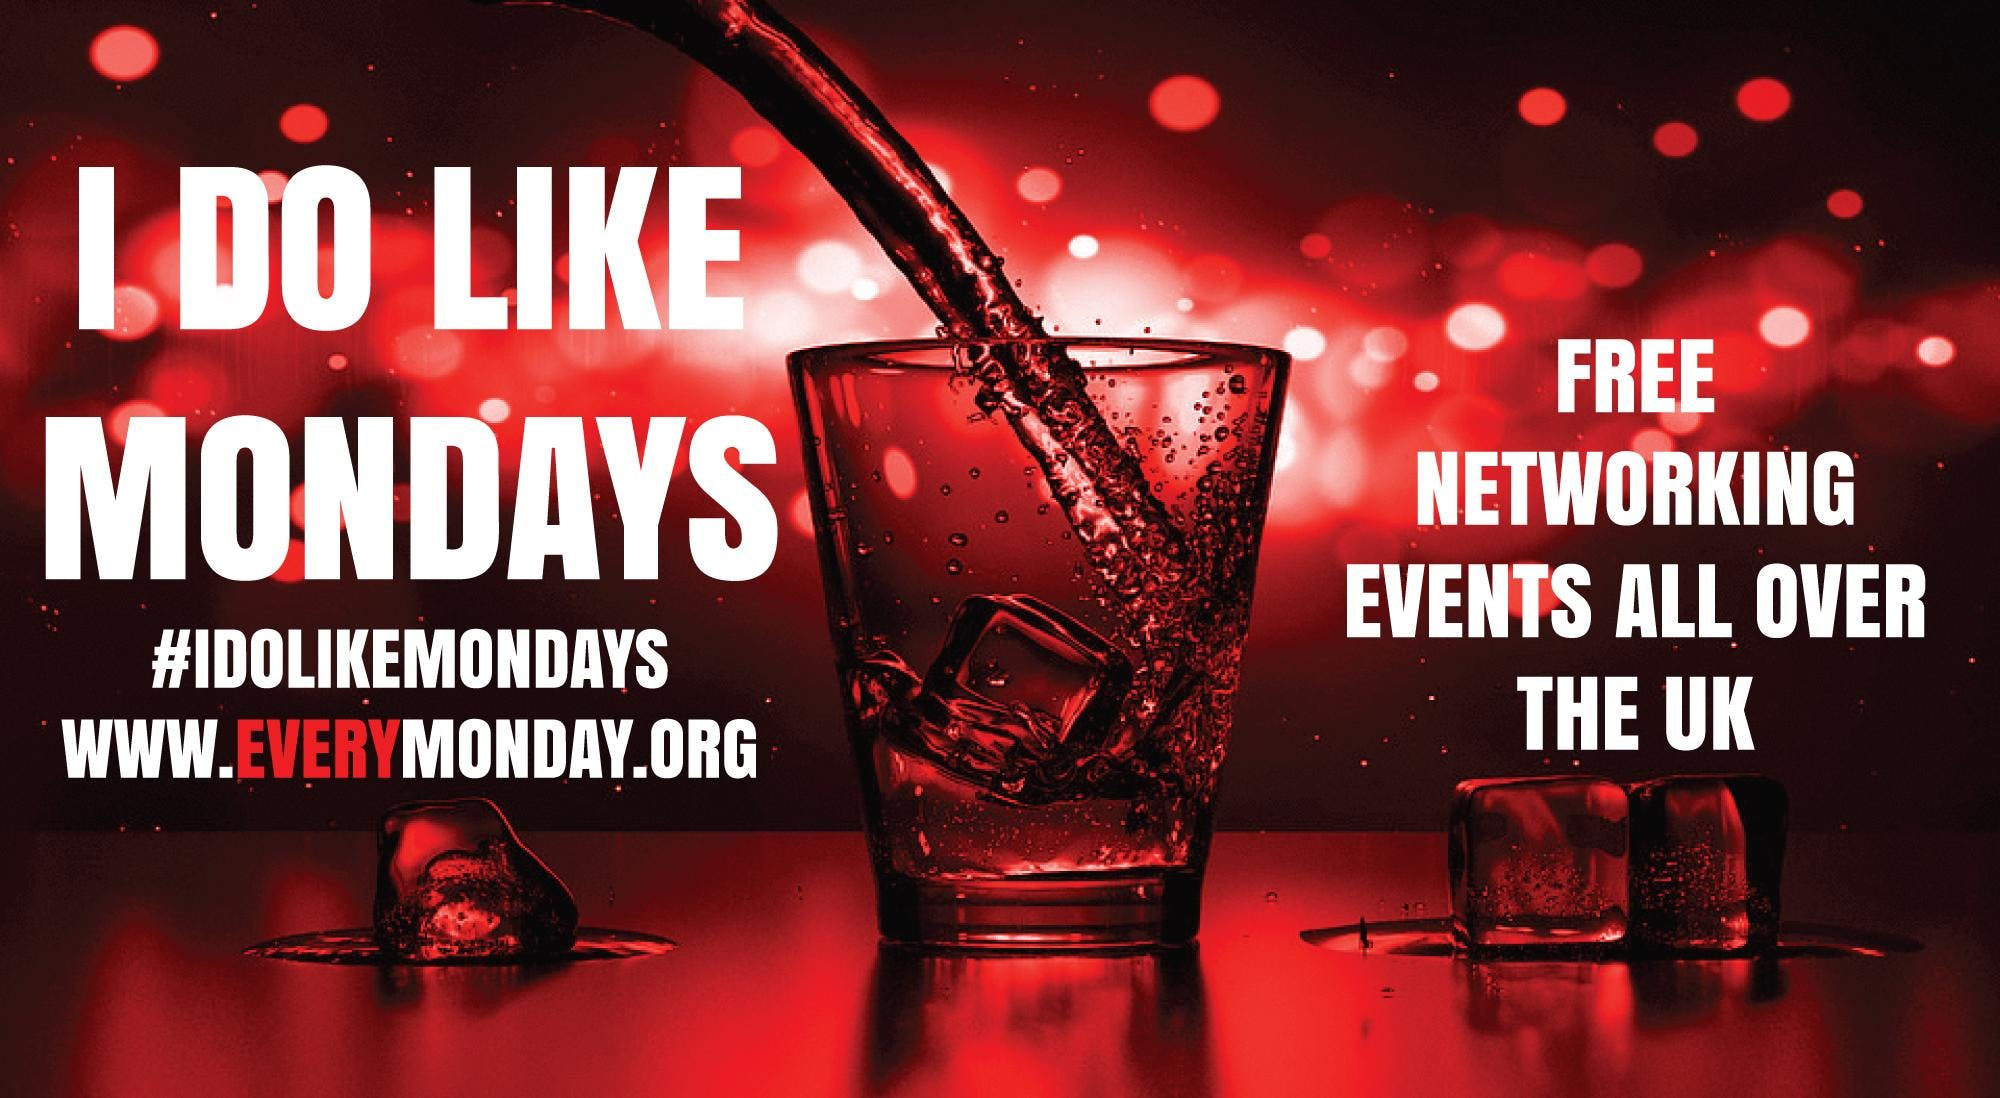 I DO LIKE MONDAYS! Free networking event in Mere Green